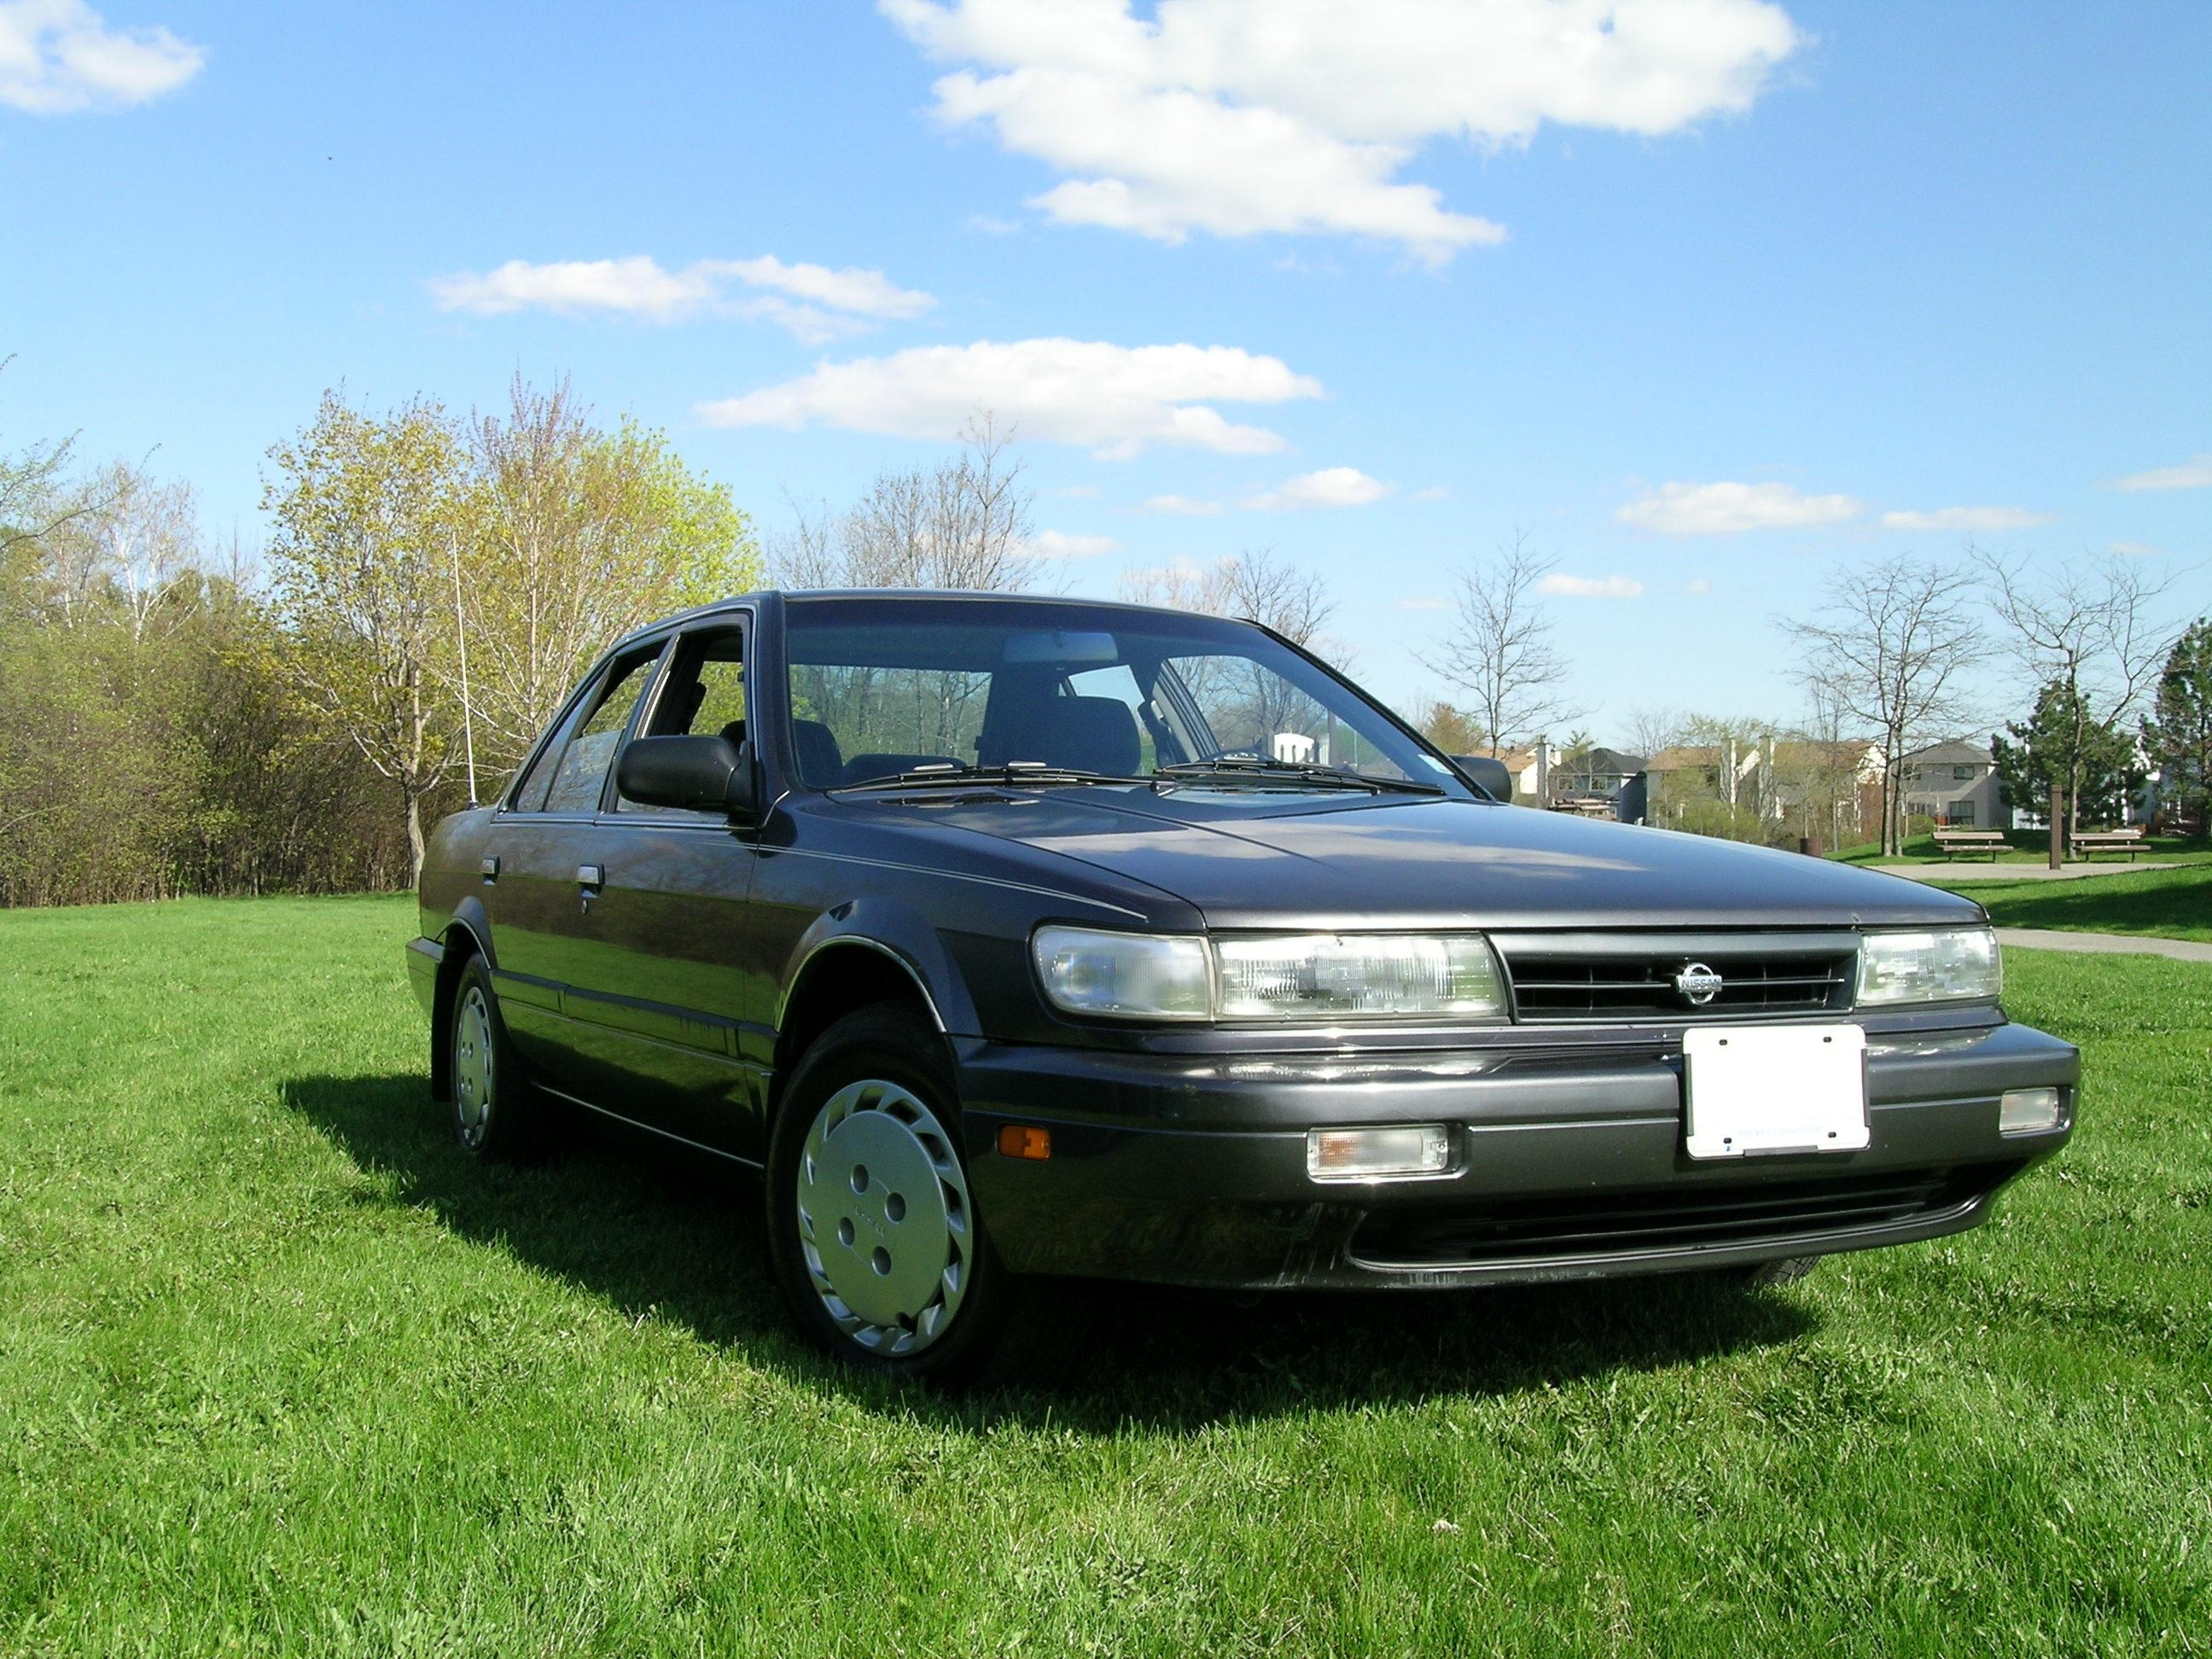 Nissan 240SX Wiring Diagram furthermore 1994 Nissan Sentra Idle Air Control Valve Location furthermore 2002 Buick Rendezvous Transmission together with 1993 Maxima Ignition Switch Diagram together with Geo Tracker Front Axle. on 1991 nissan stanza engine diagram